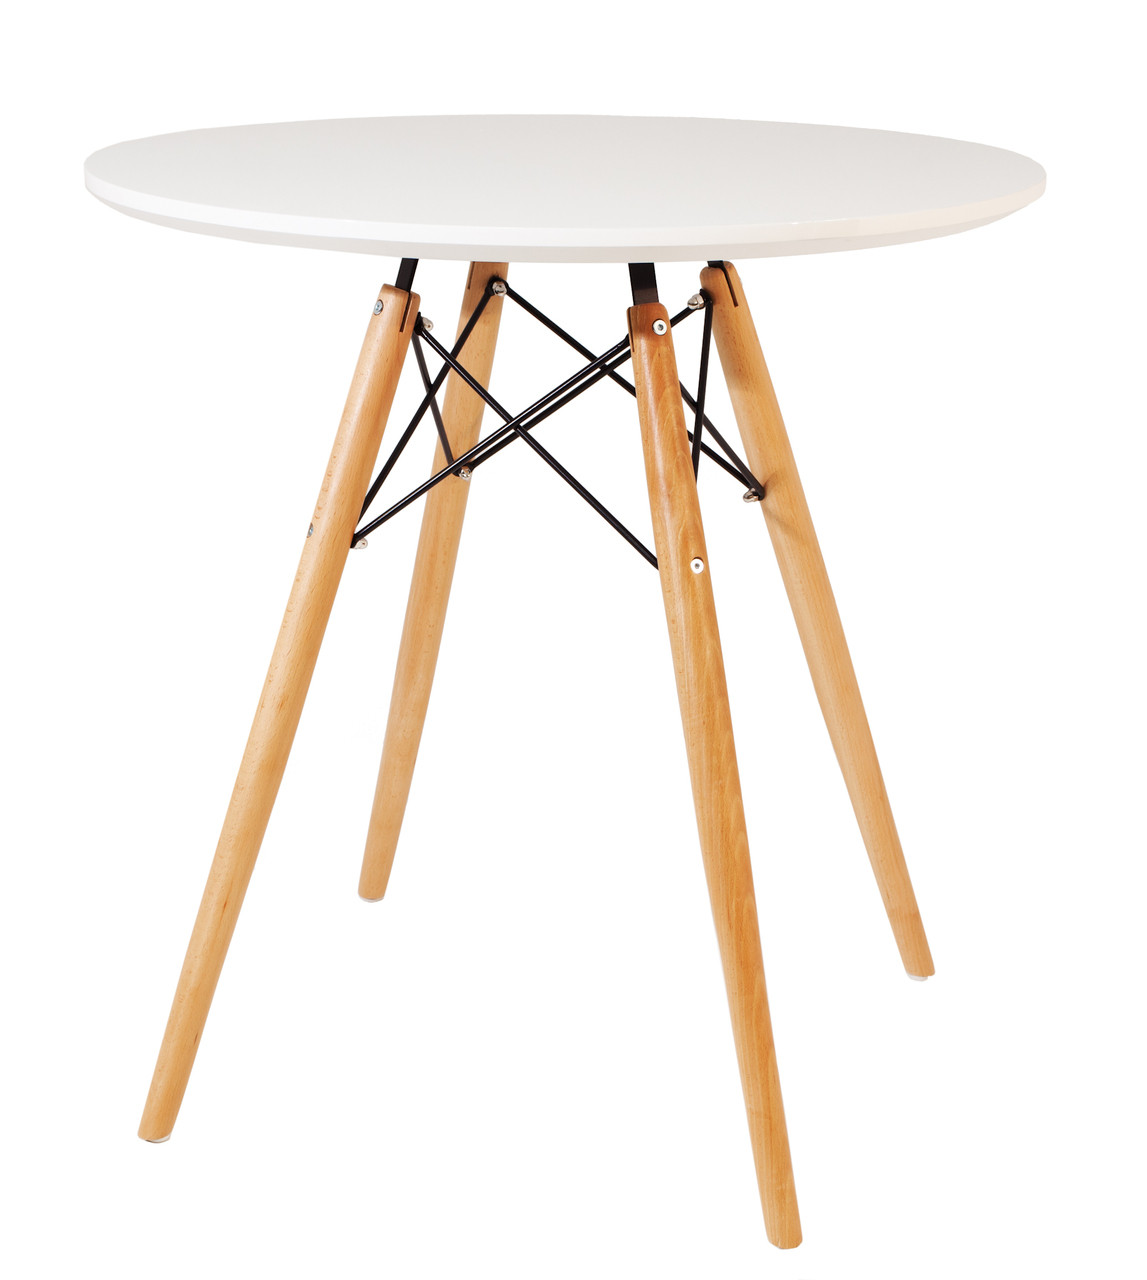 Replica Charles & Ray Eames DSW Dining Table-80cm